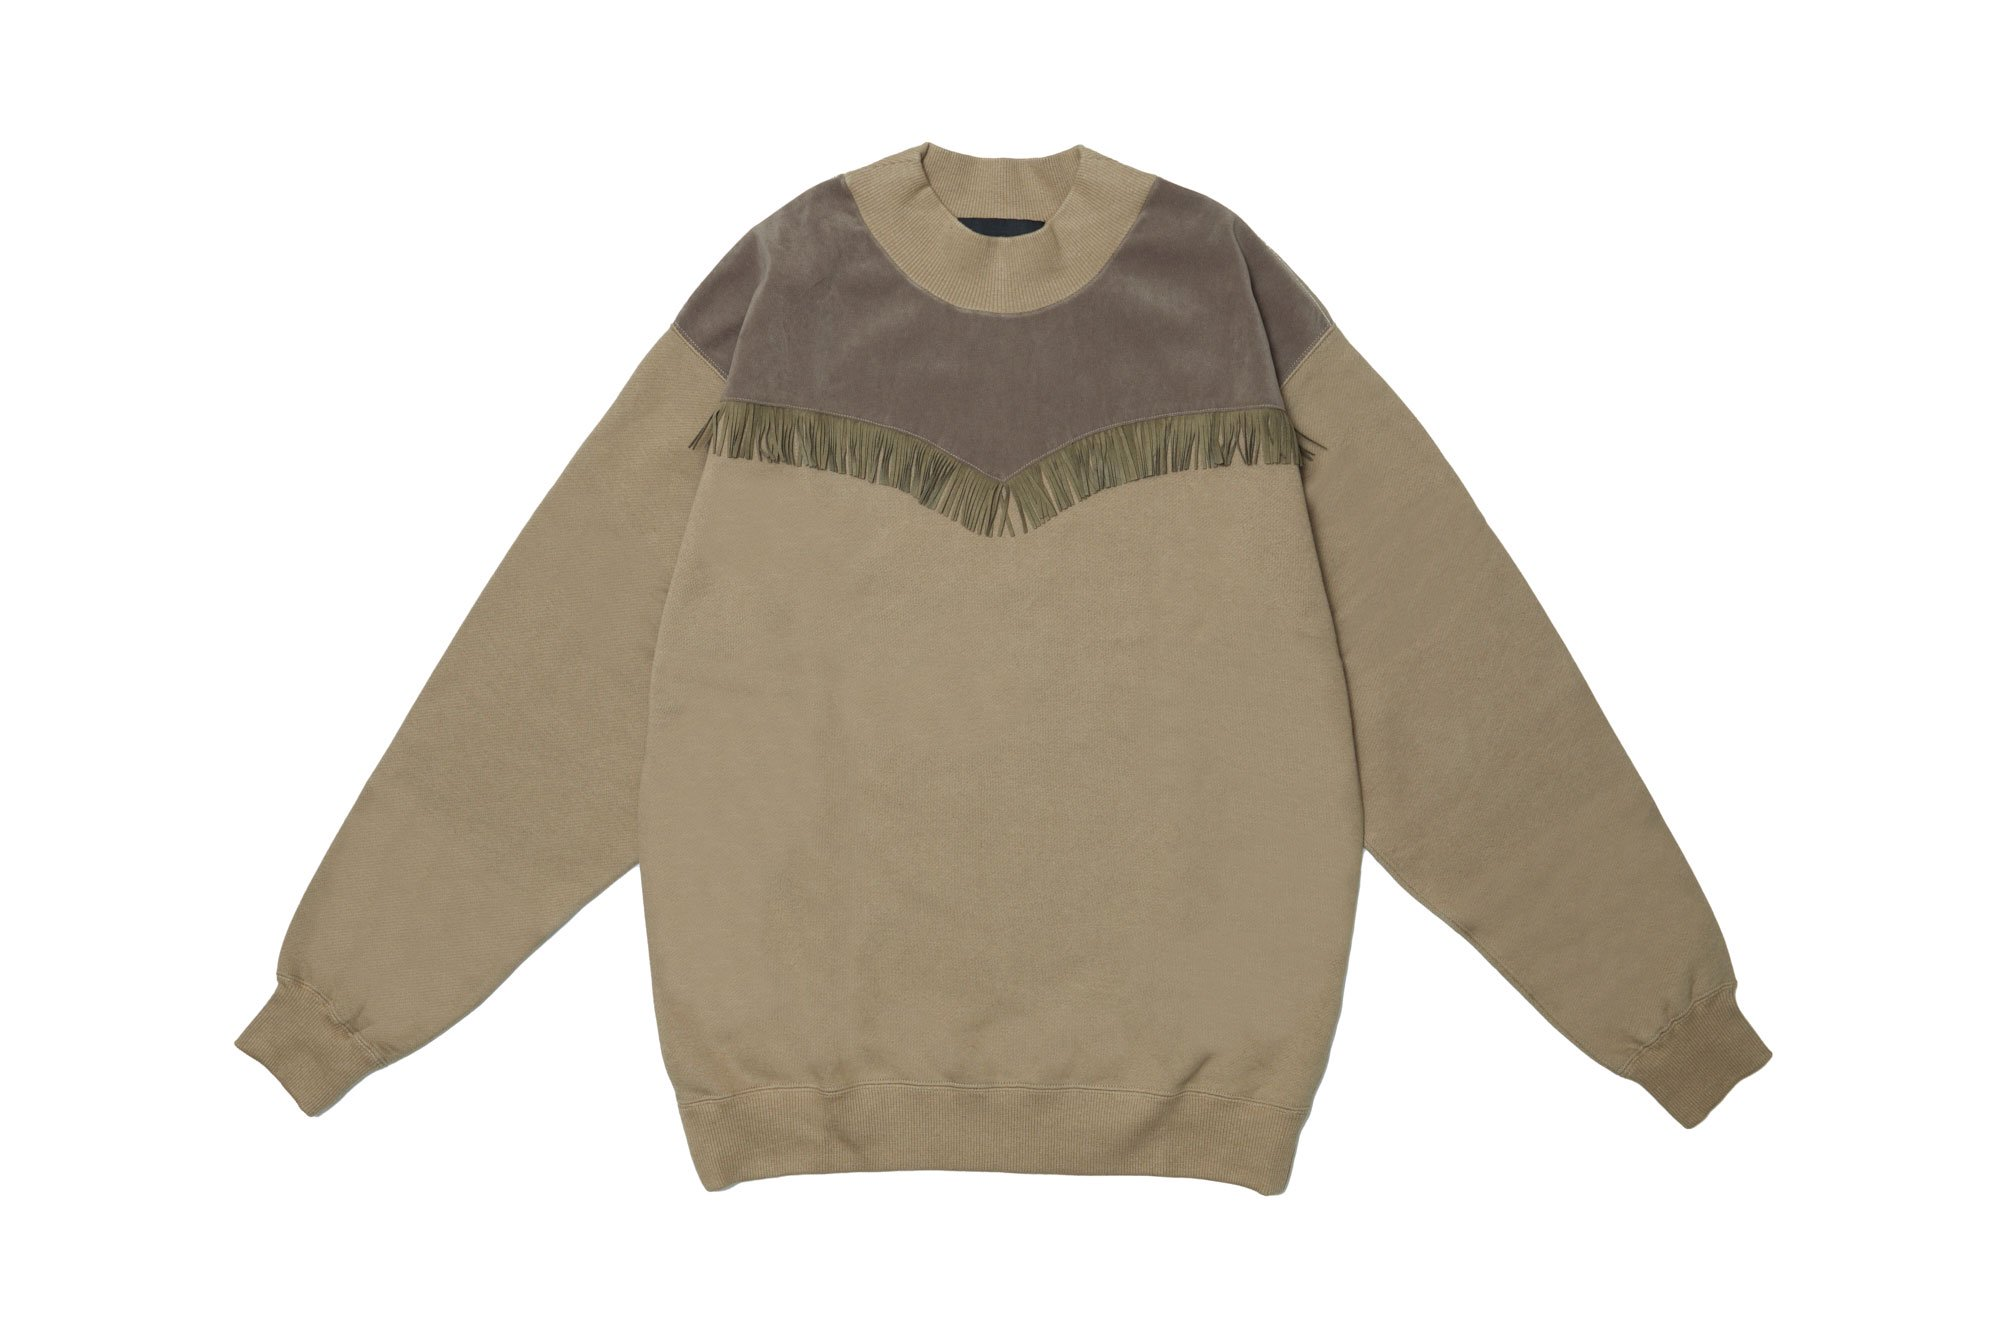 <img class='new_mark_img1' src='https://img.shop-pro.jp/img/new/icons14.gif' style='border:none;display:inline;margin:0px;padding:0px;width:auto;' />2020AW collection Suede Fringe Sweatshirt KH